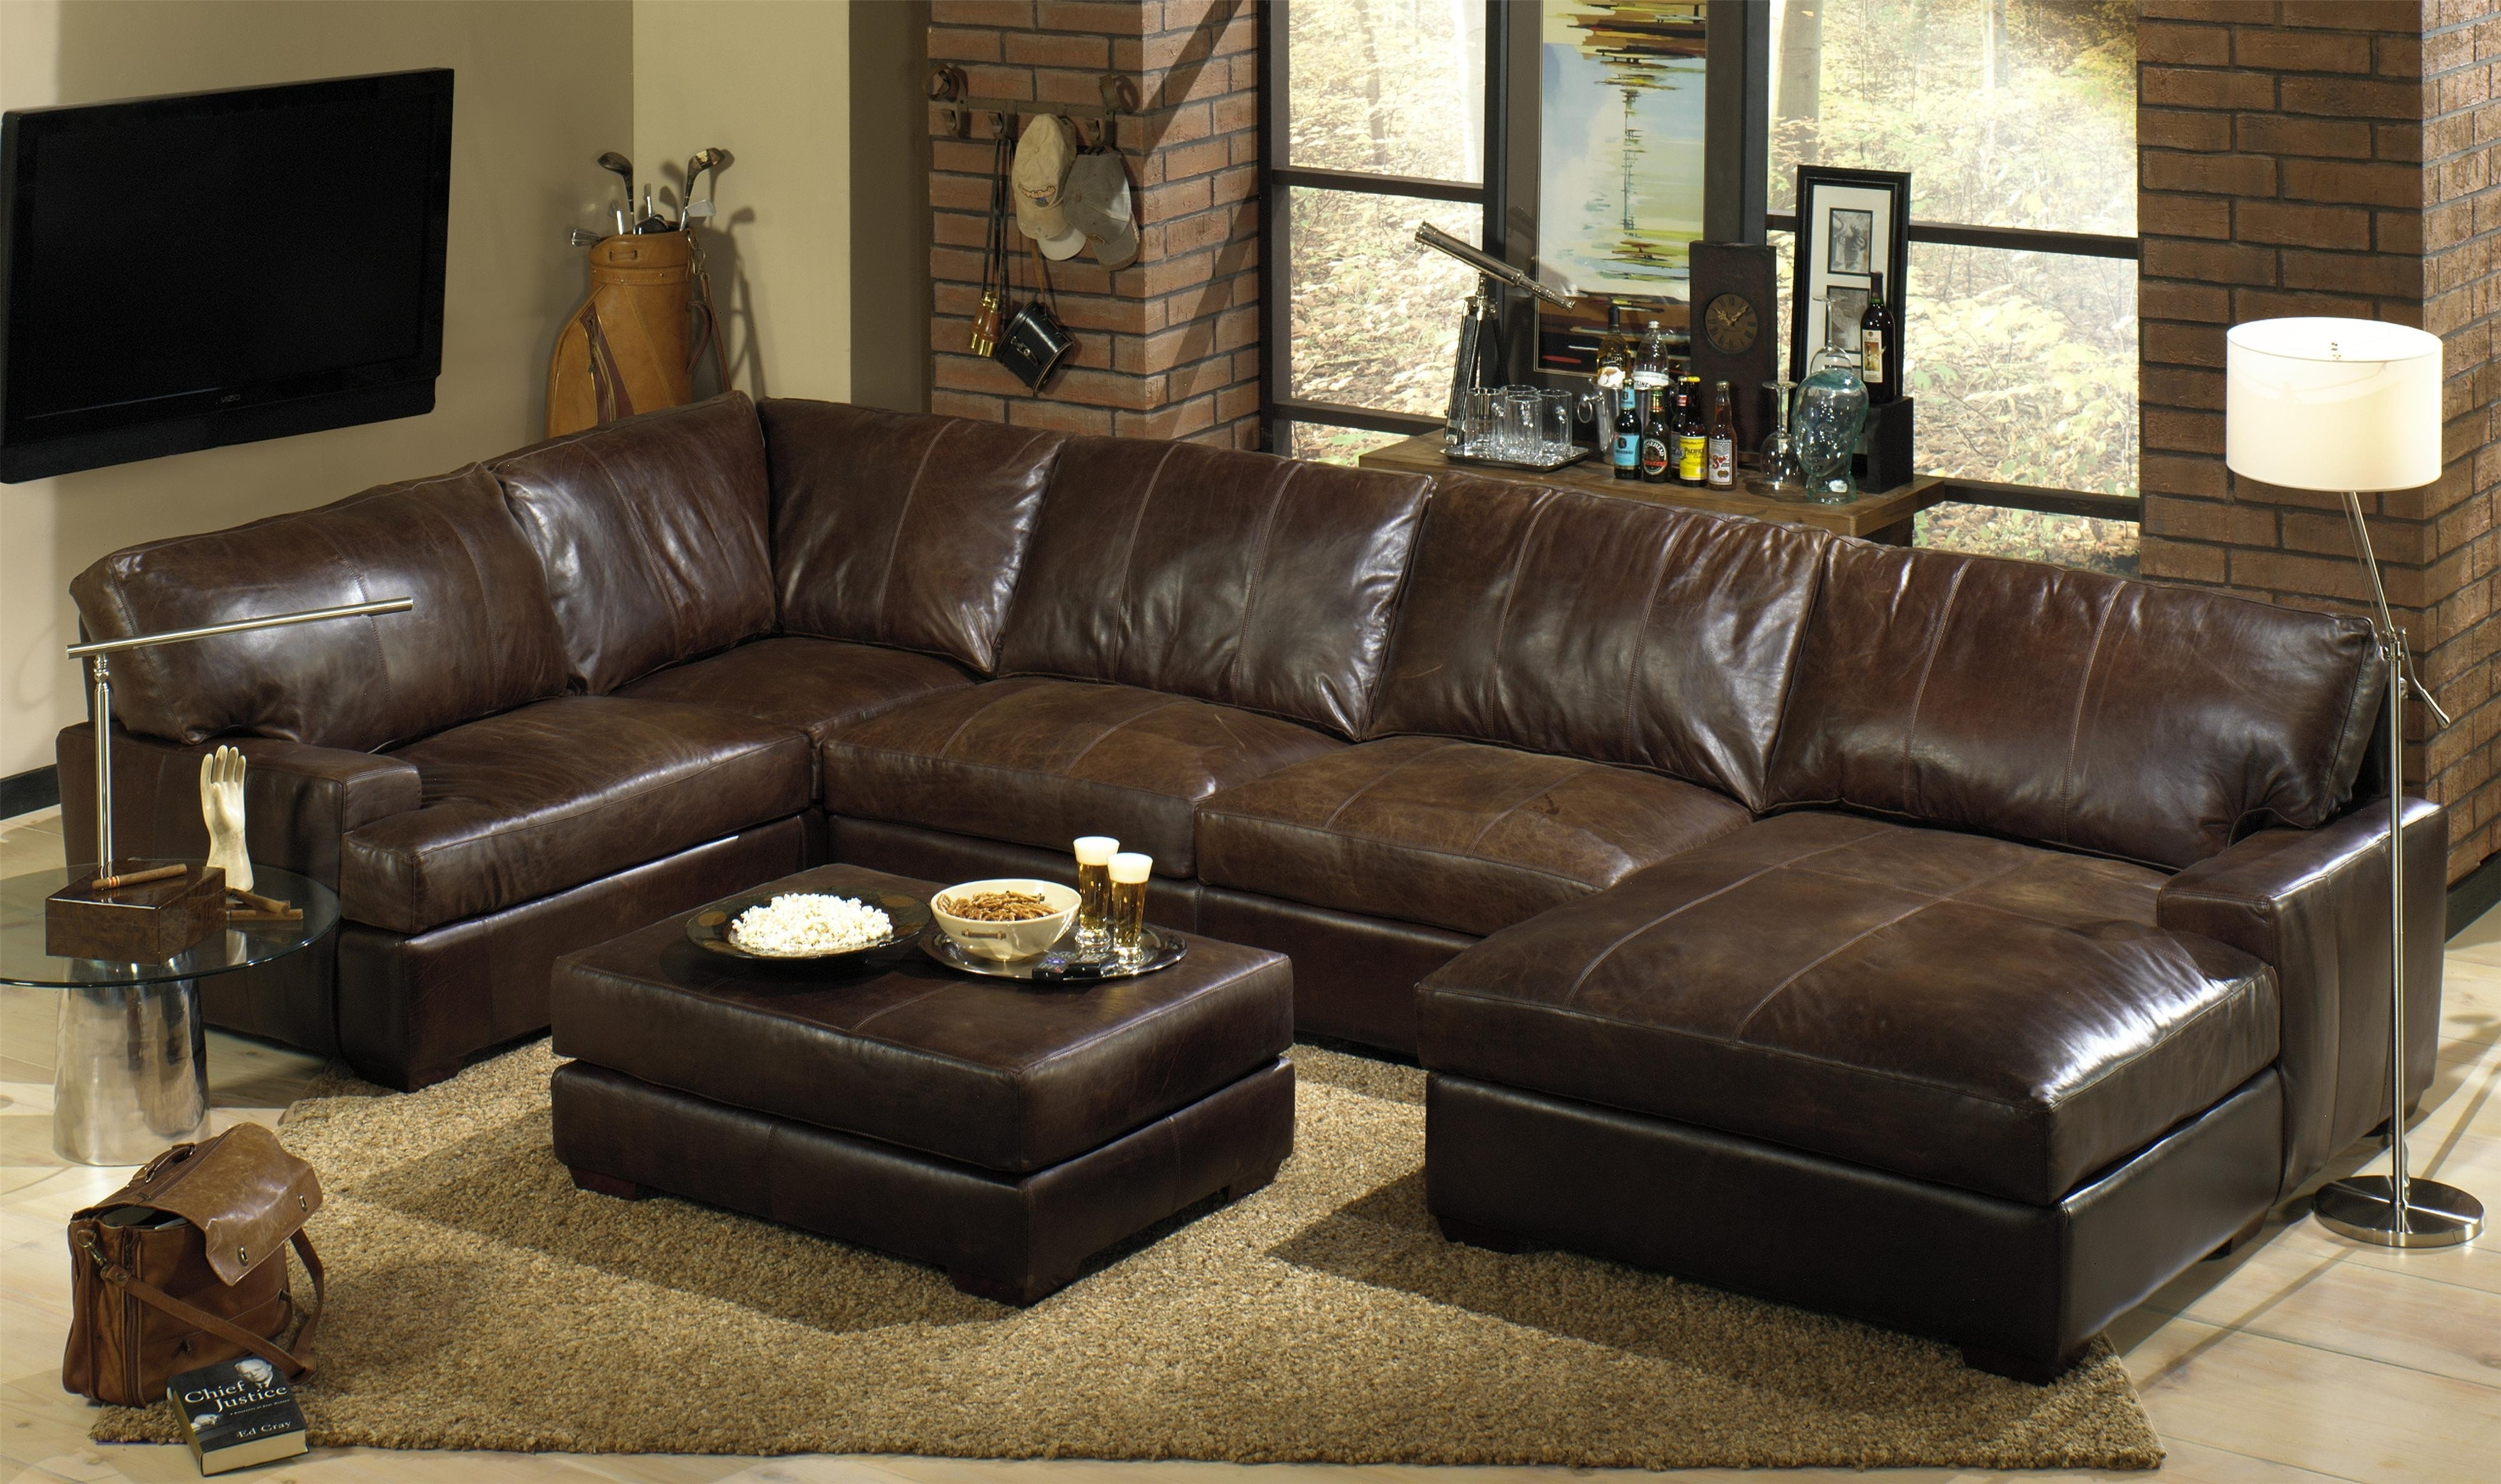 Sectional Sofas At Big Lots Within Famous Fresh Sectional Sofas Big Lots (34 Photos) (Gallery 15 of 20)